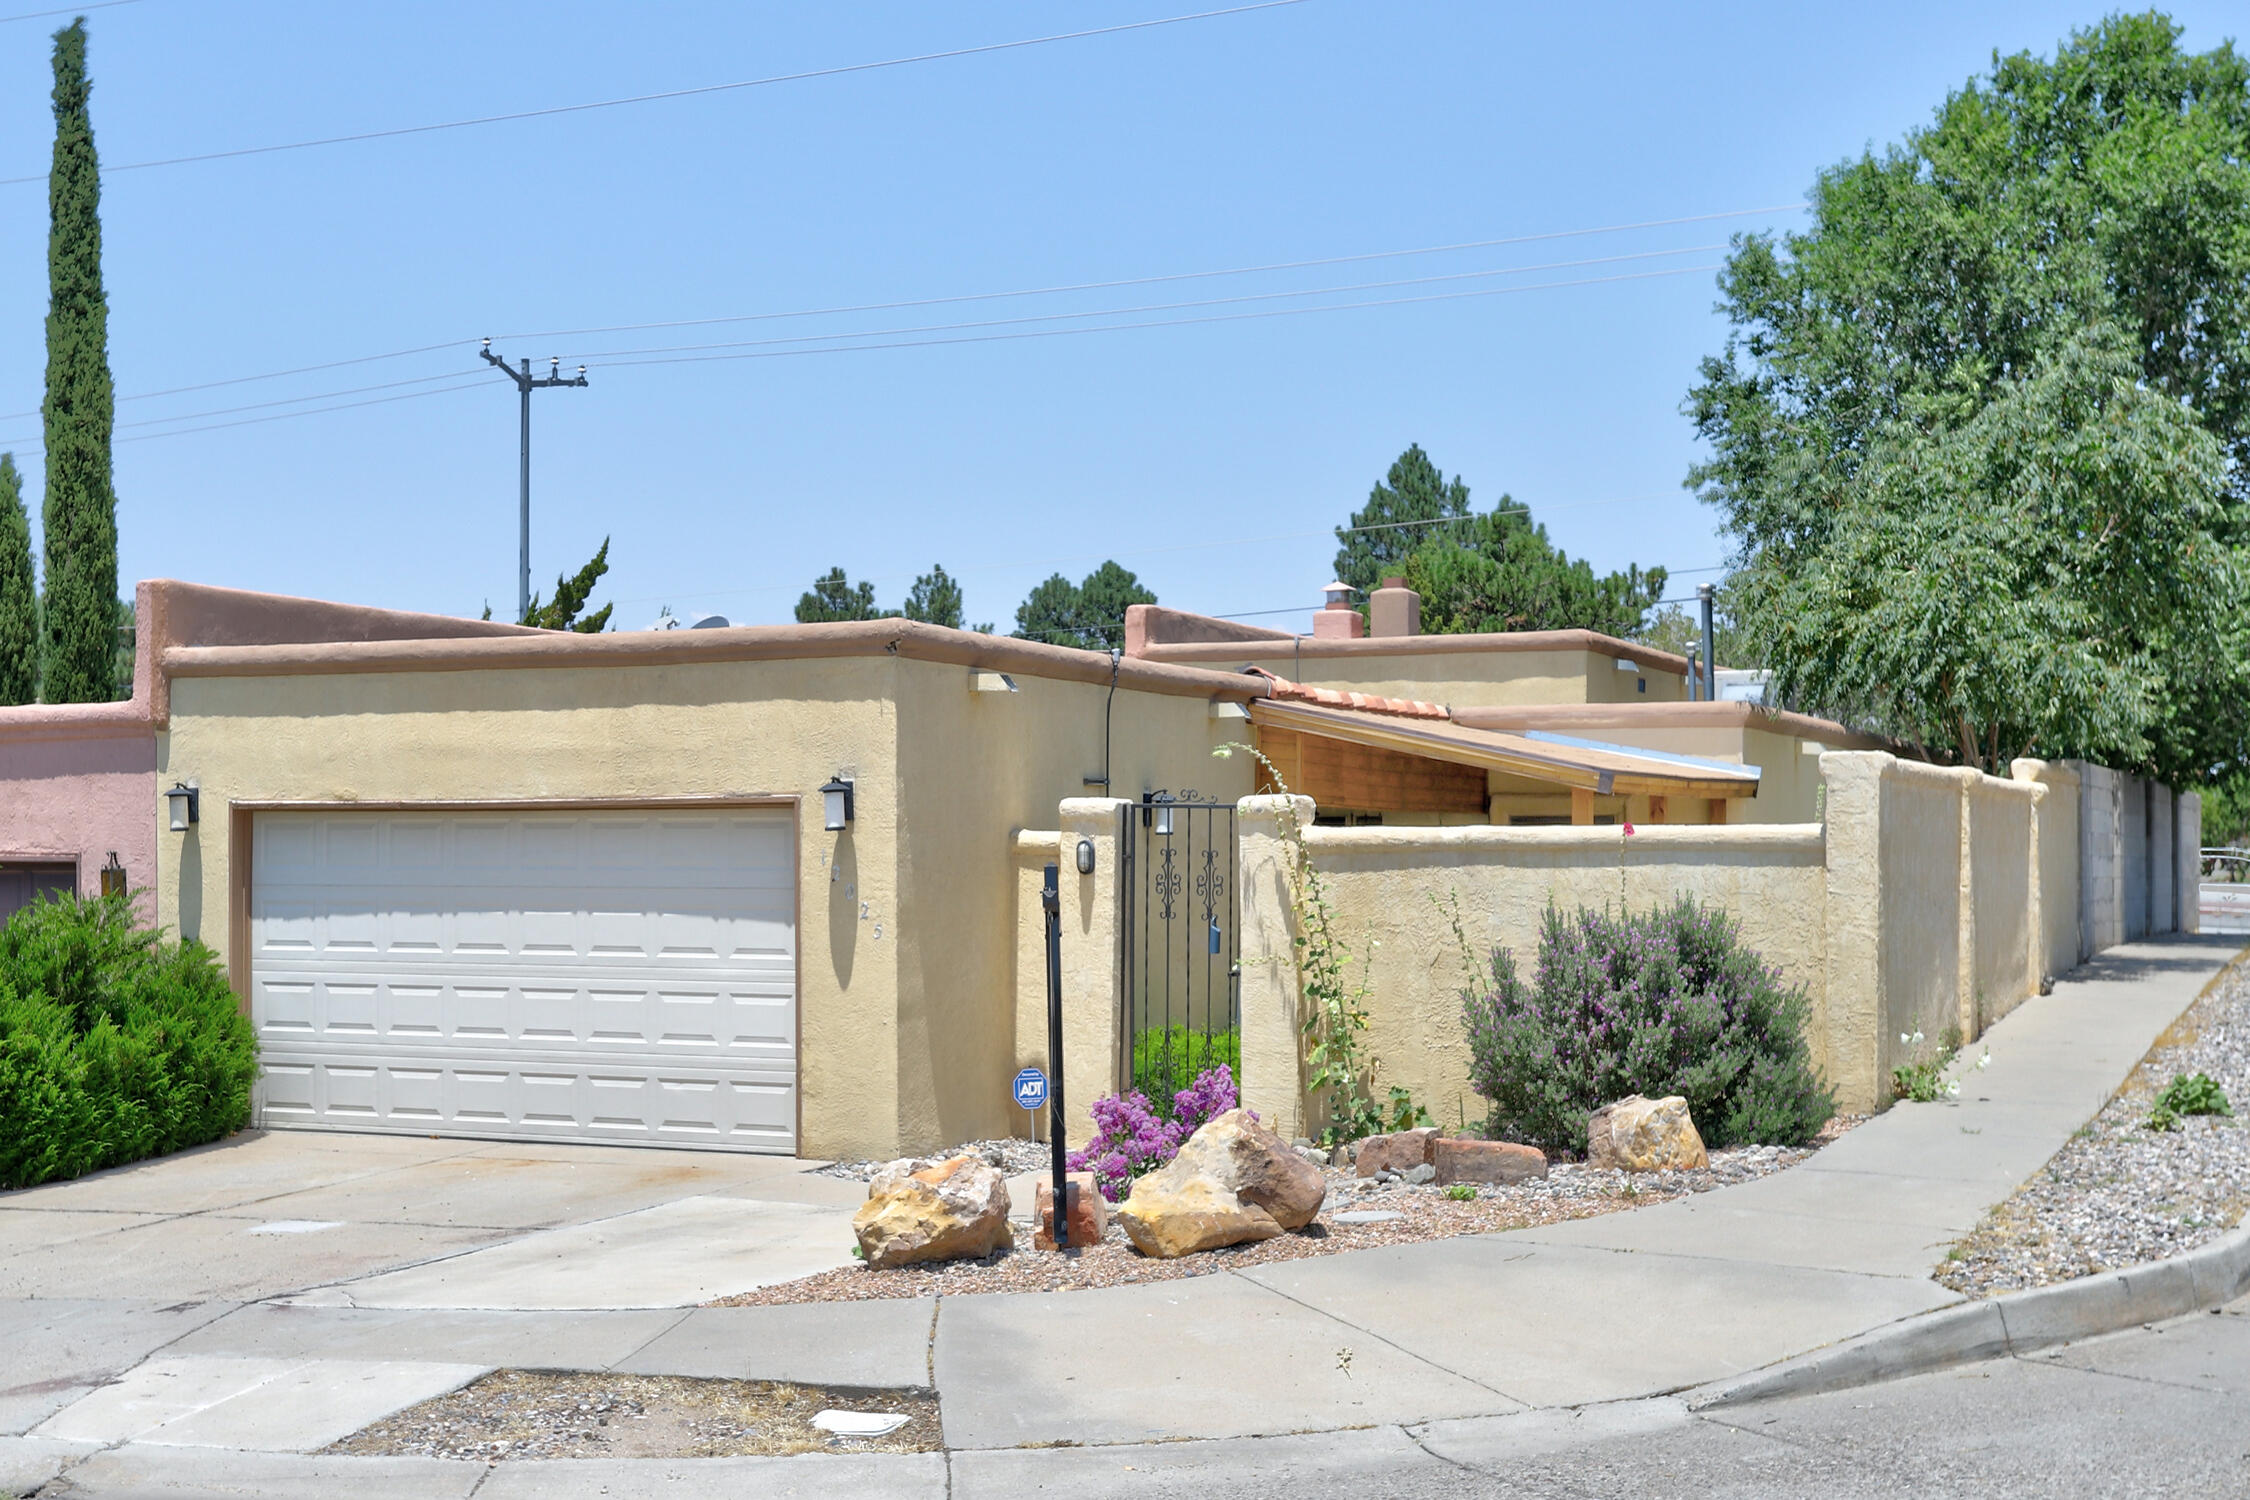 Wonderful home with tile floors, high ceilings, complete remodel 4 years ago.  Split floor plan with master on the other side of the house.  Complete fenced yard with covered patio.   Has a good location in the Heights.  Deep 2 car garage, oversized master bedroom closet that seller expanded.